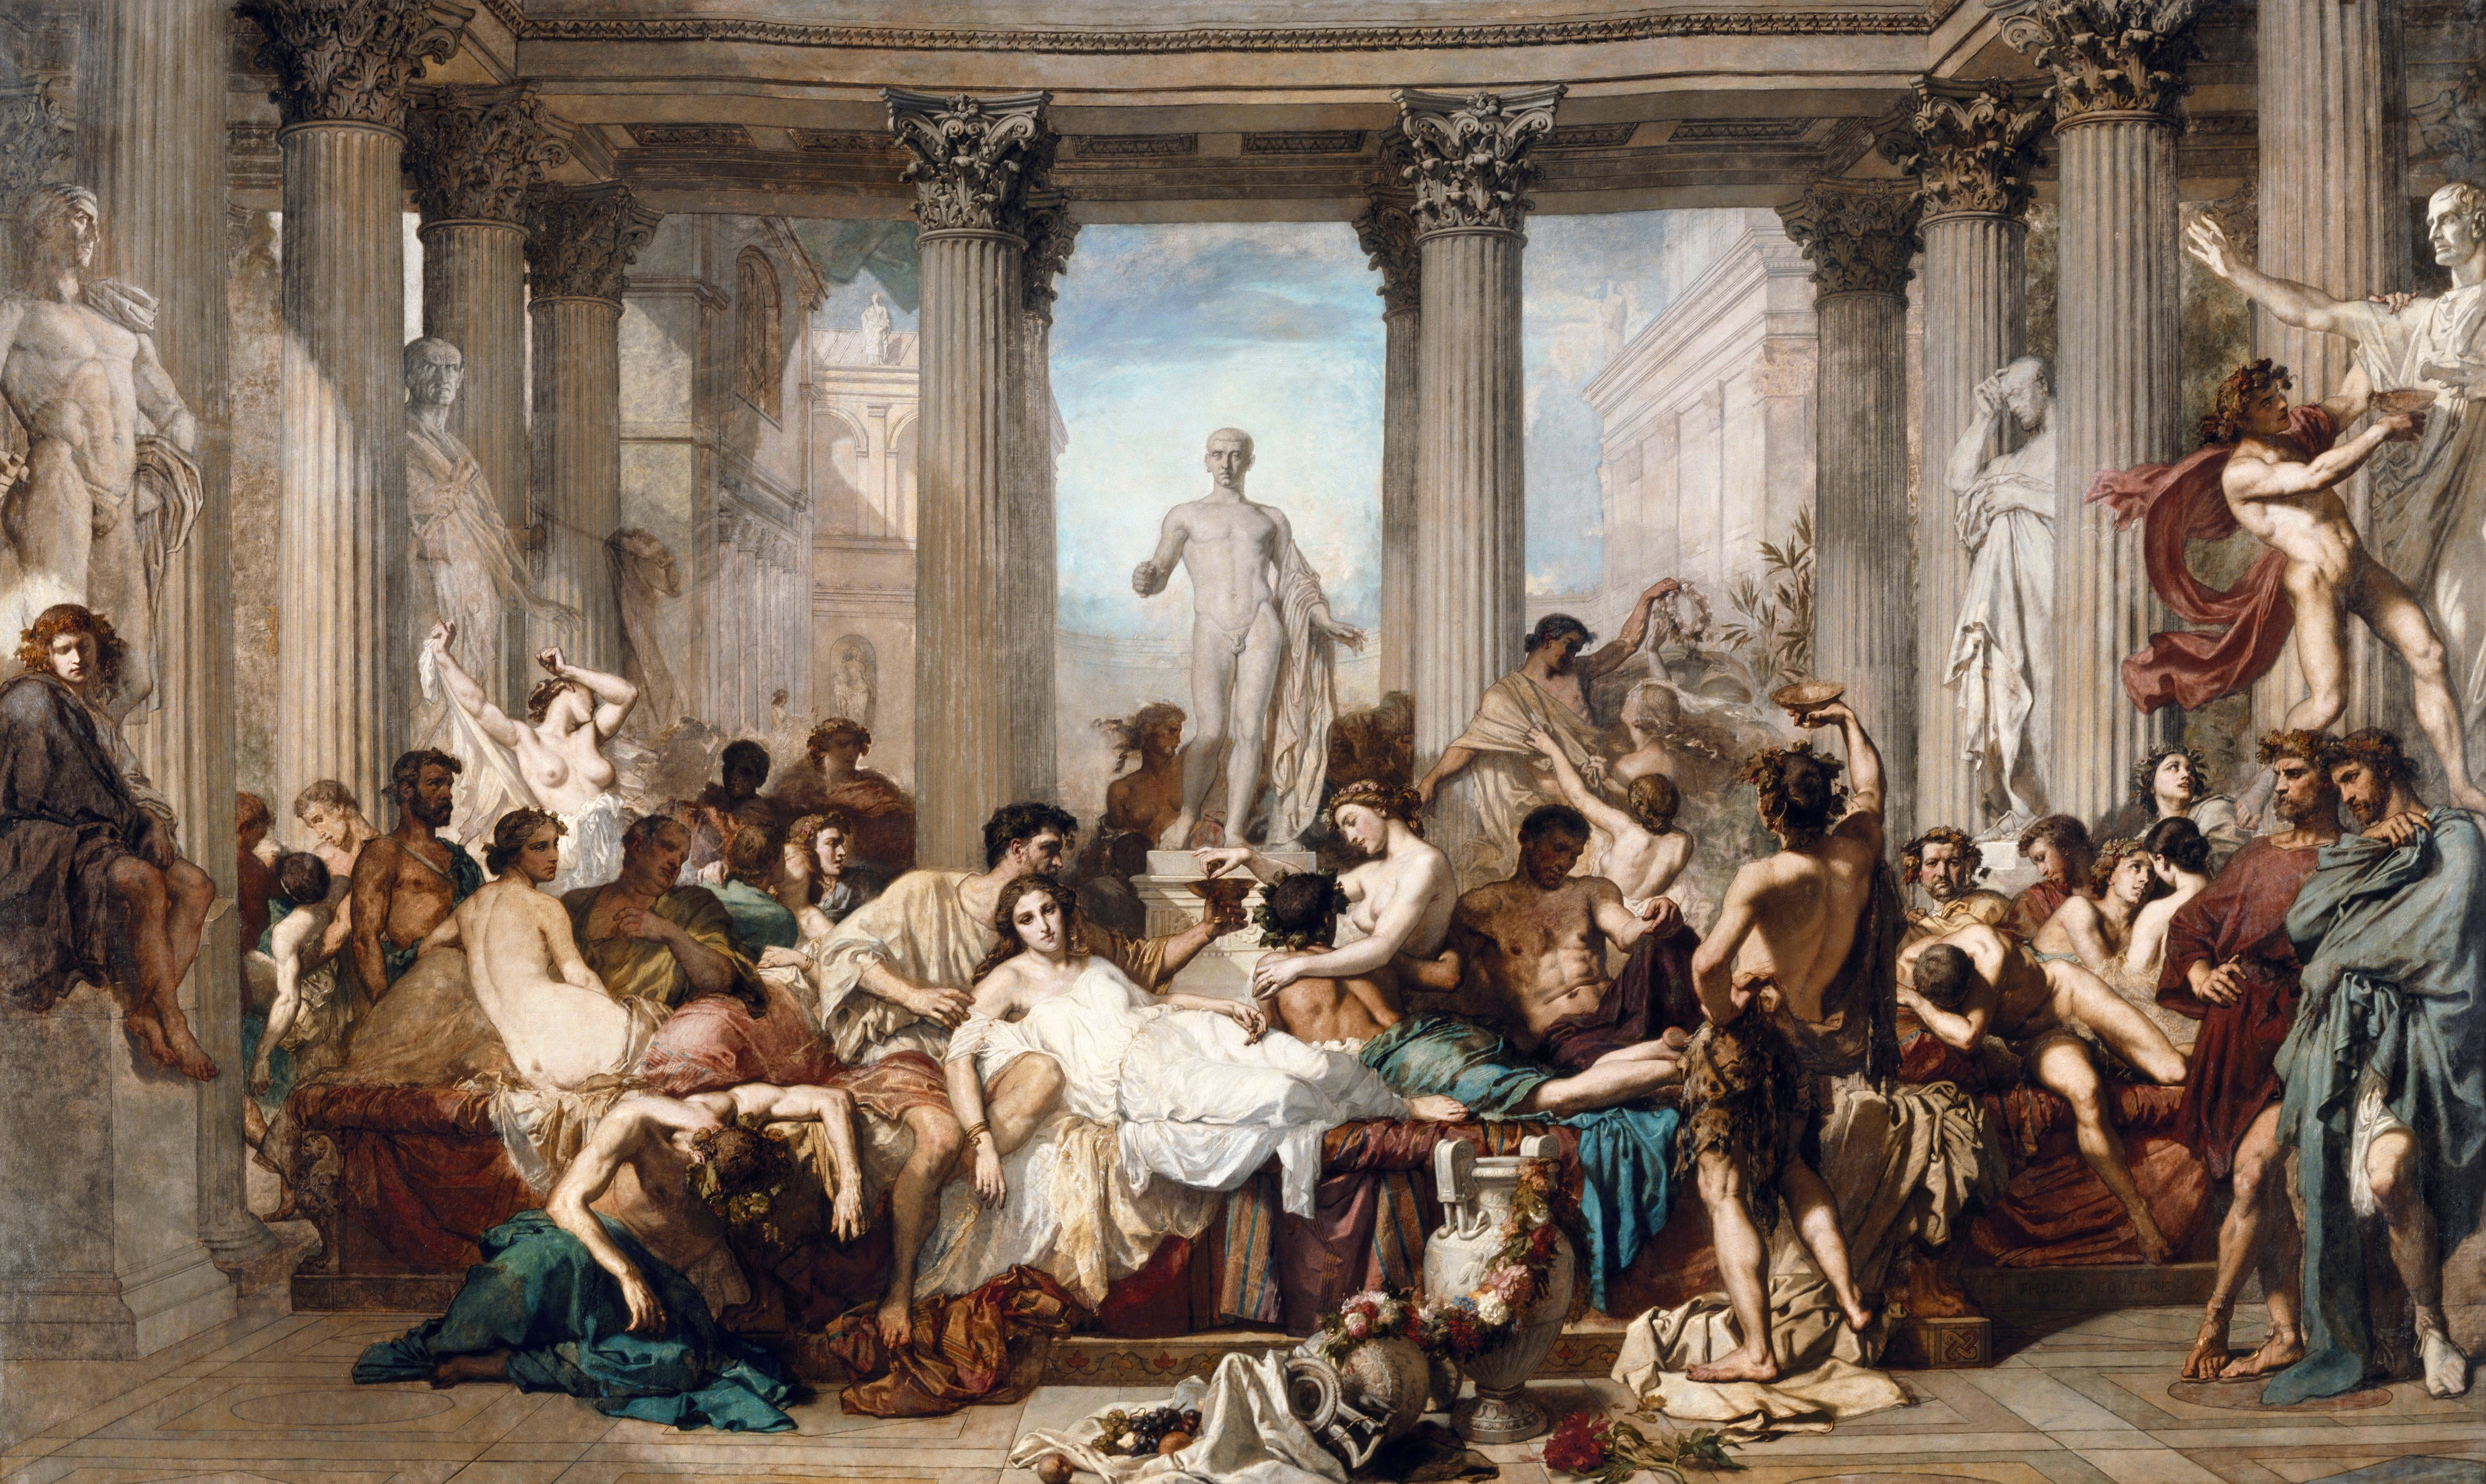 Romans during the Decadence, by Thomas Couture